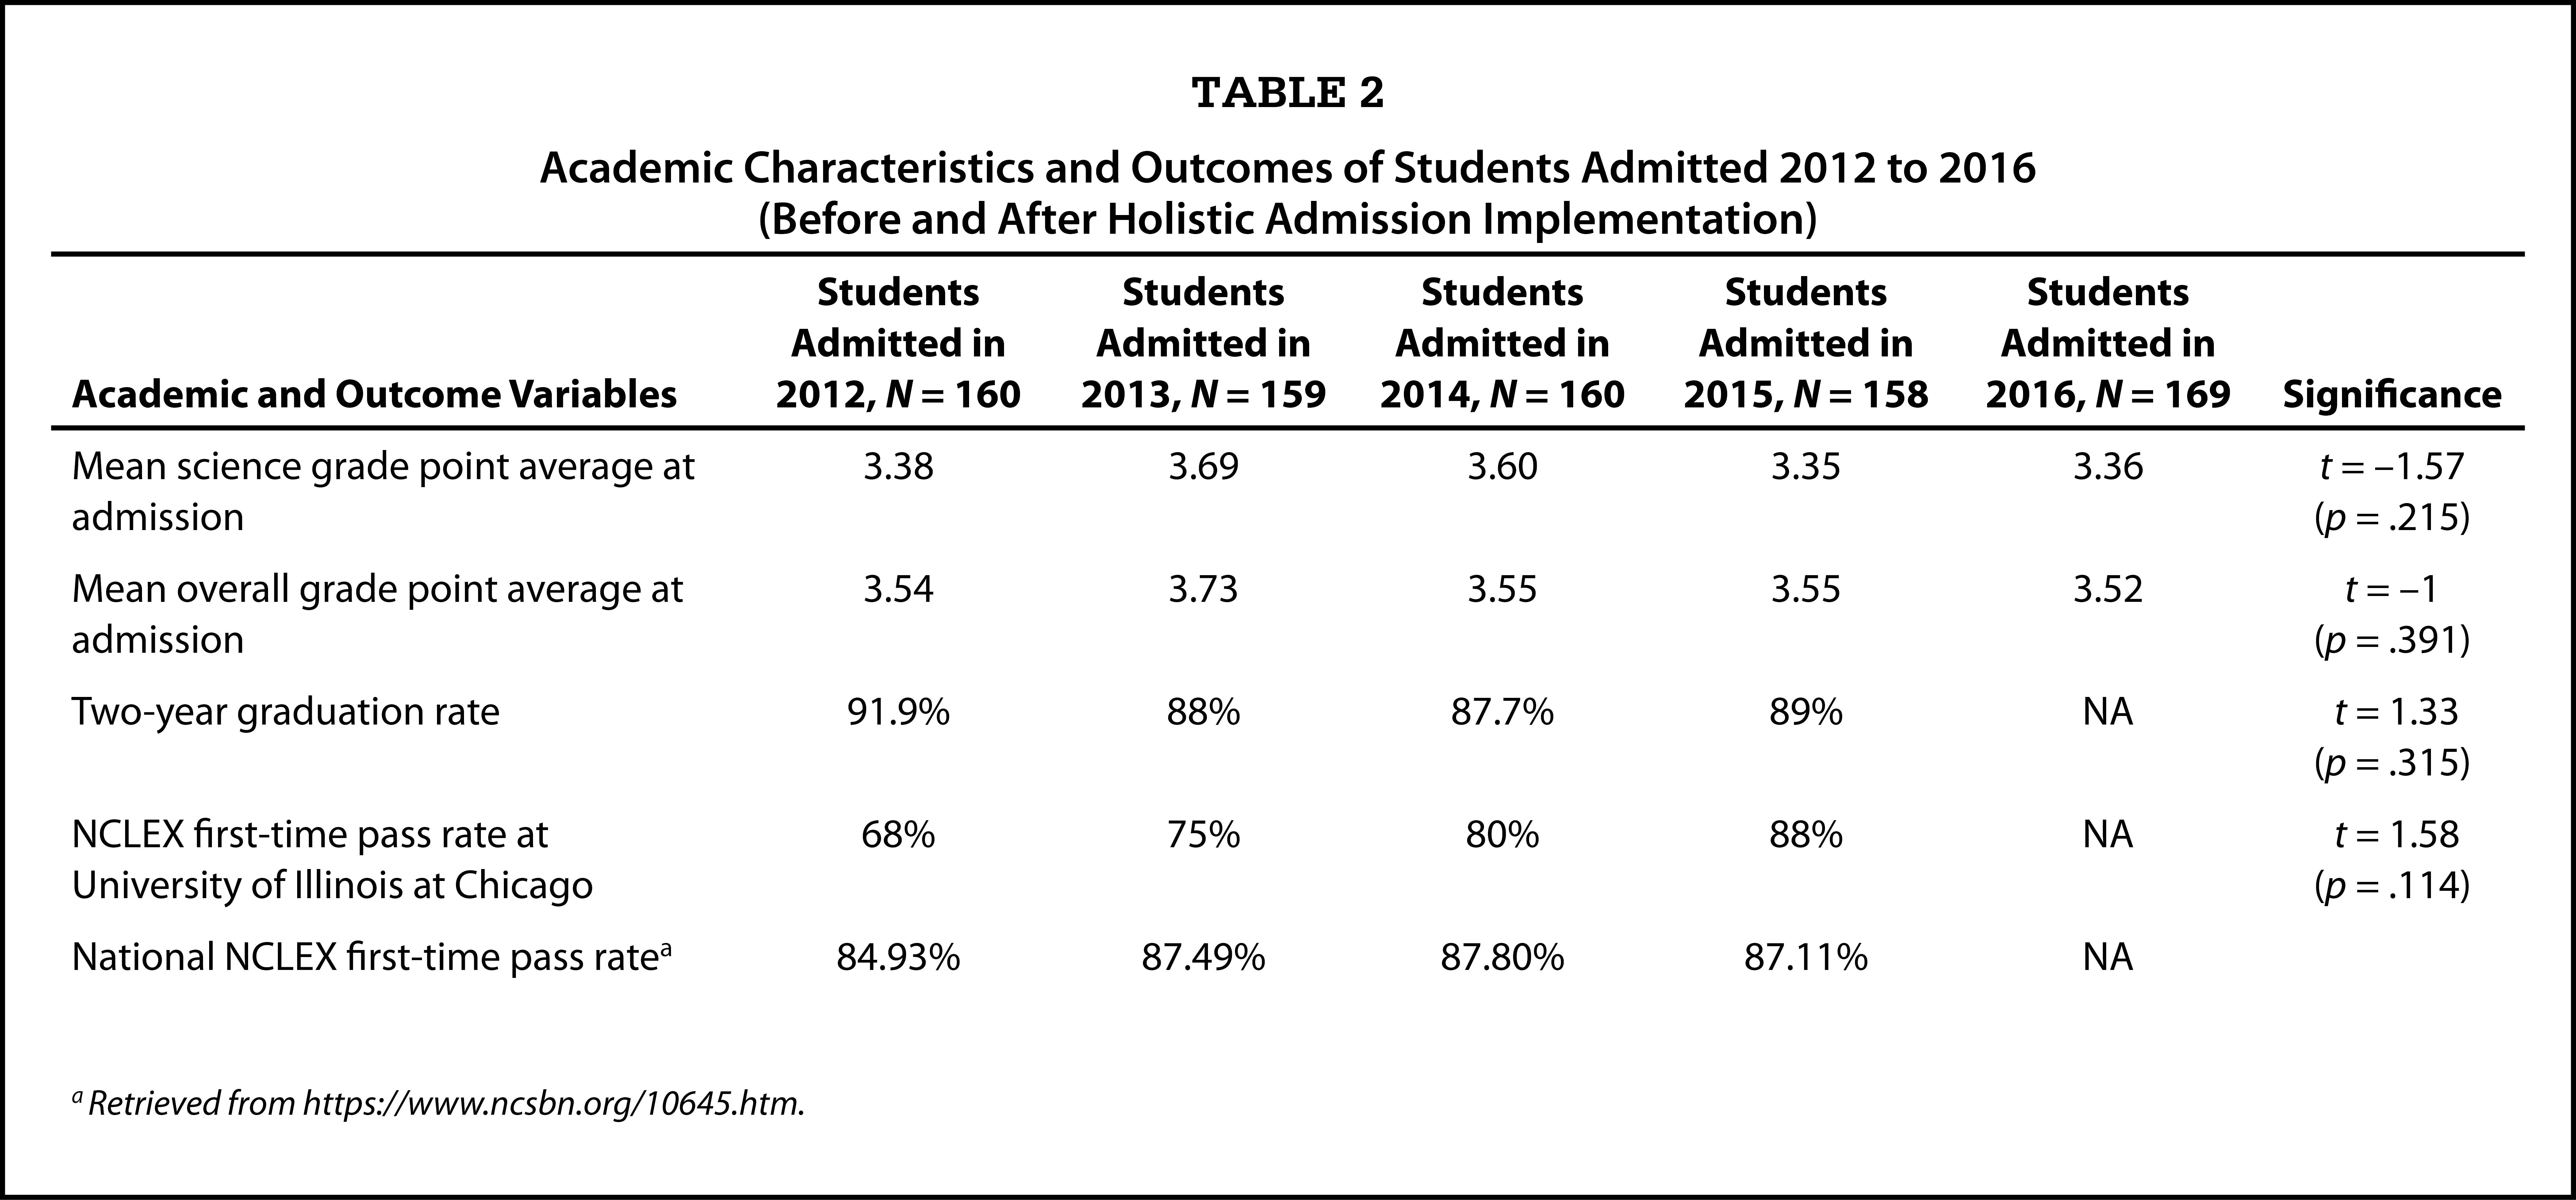 Academic Characteristics and Outcomes of Students Admitted 2012 to 2016 (Before and After Holistic Admission Implementation)